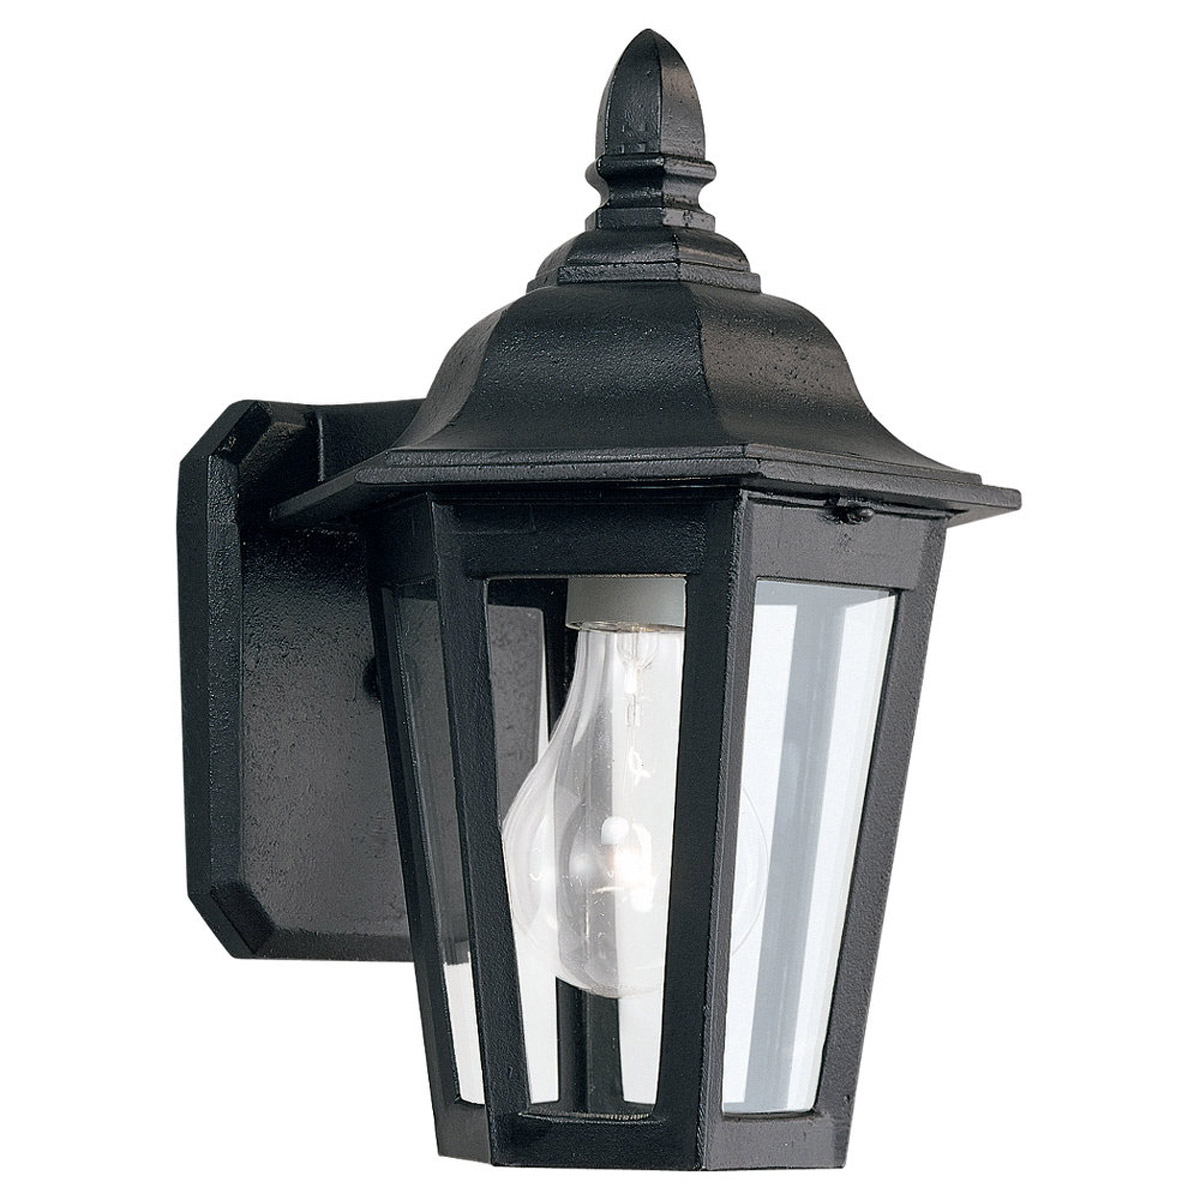 Sea Gull Lighting Brentwood 1 Light Outdoor Wall Lantern in Black 8822-12 photo